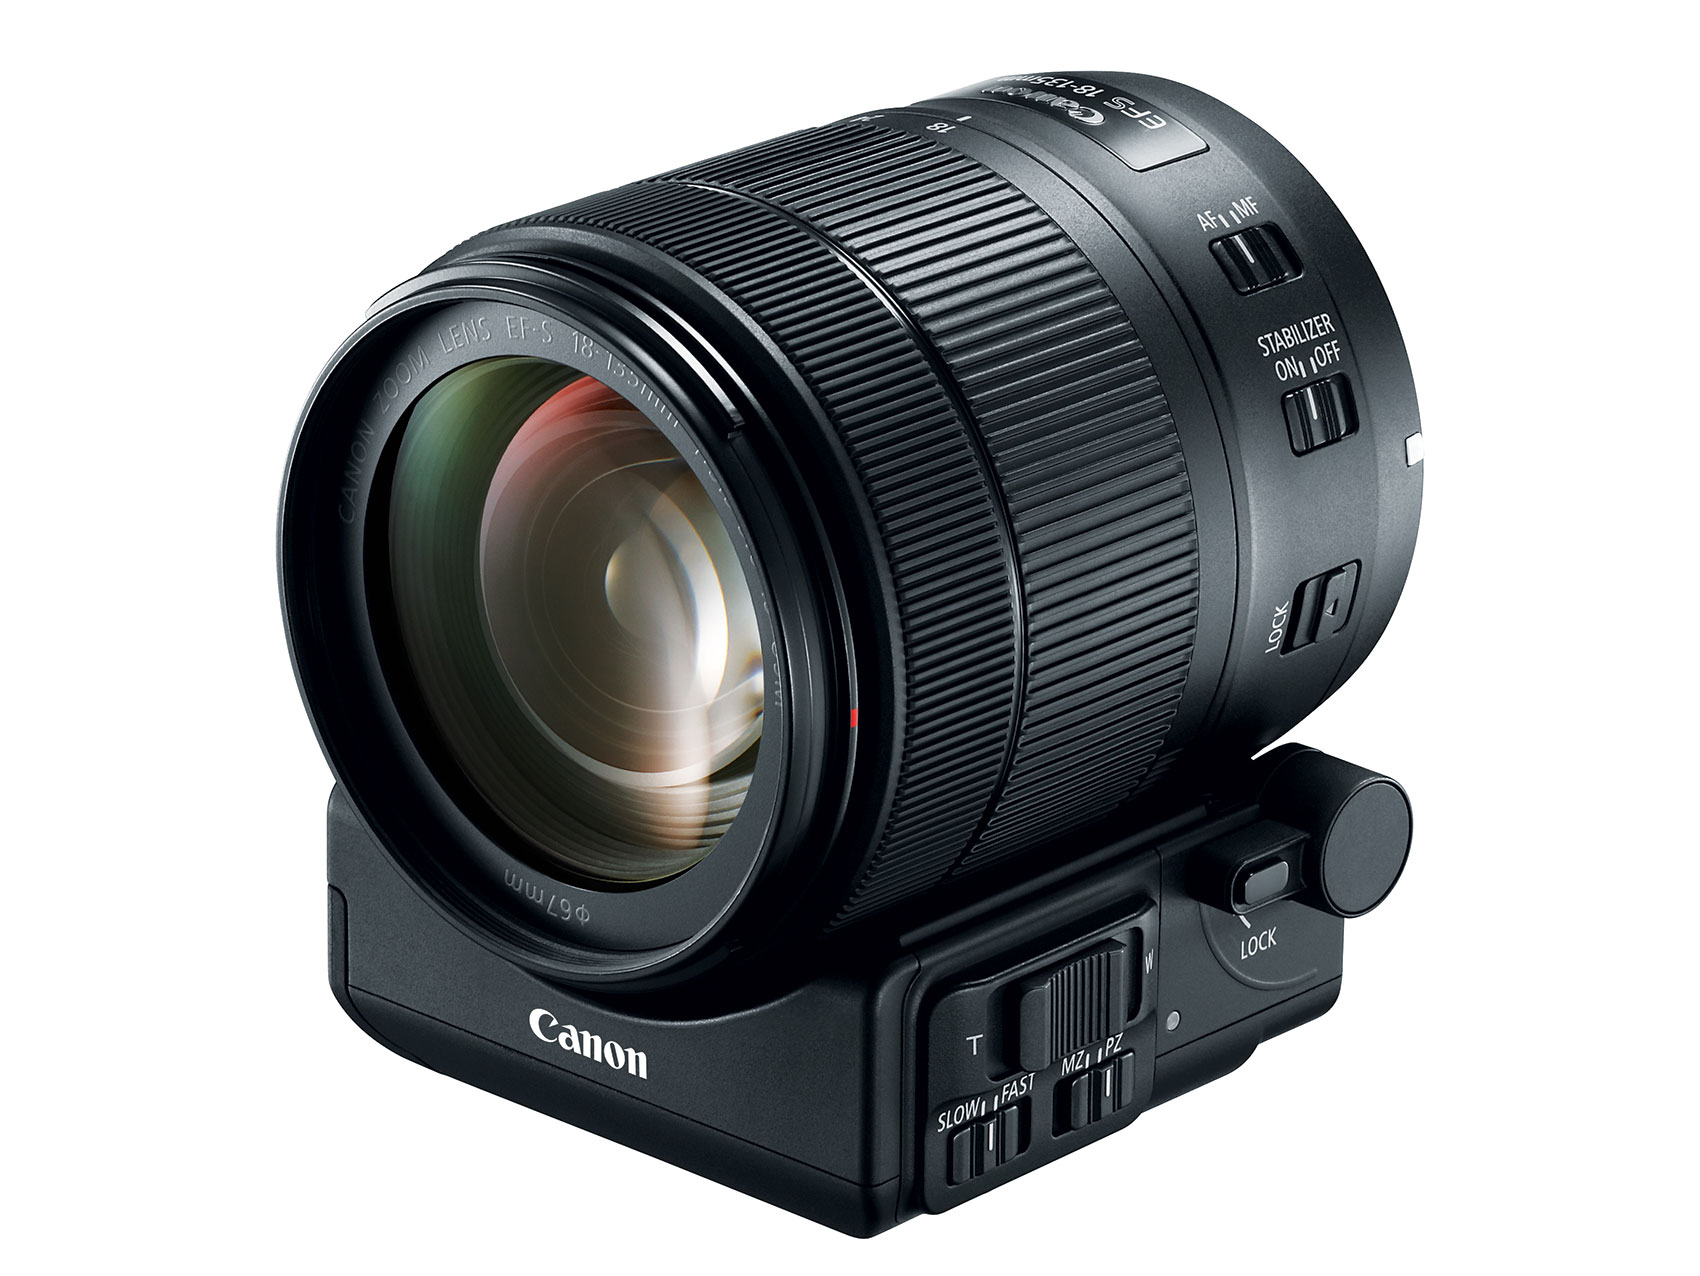 canon_efs_18-135mm_powerzoom_2.jpg